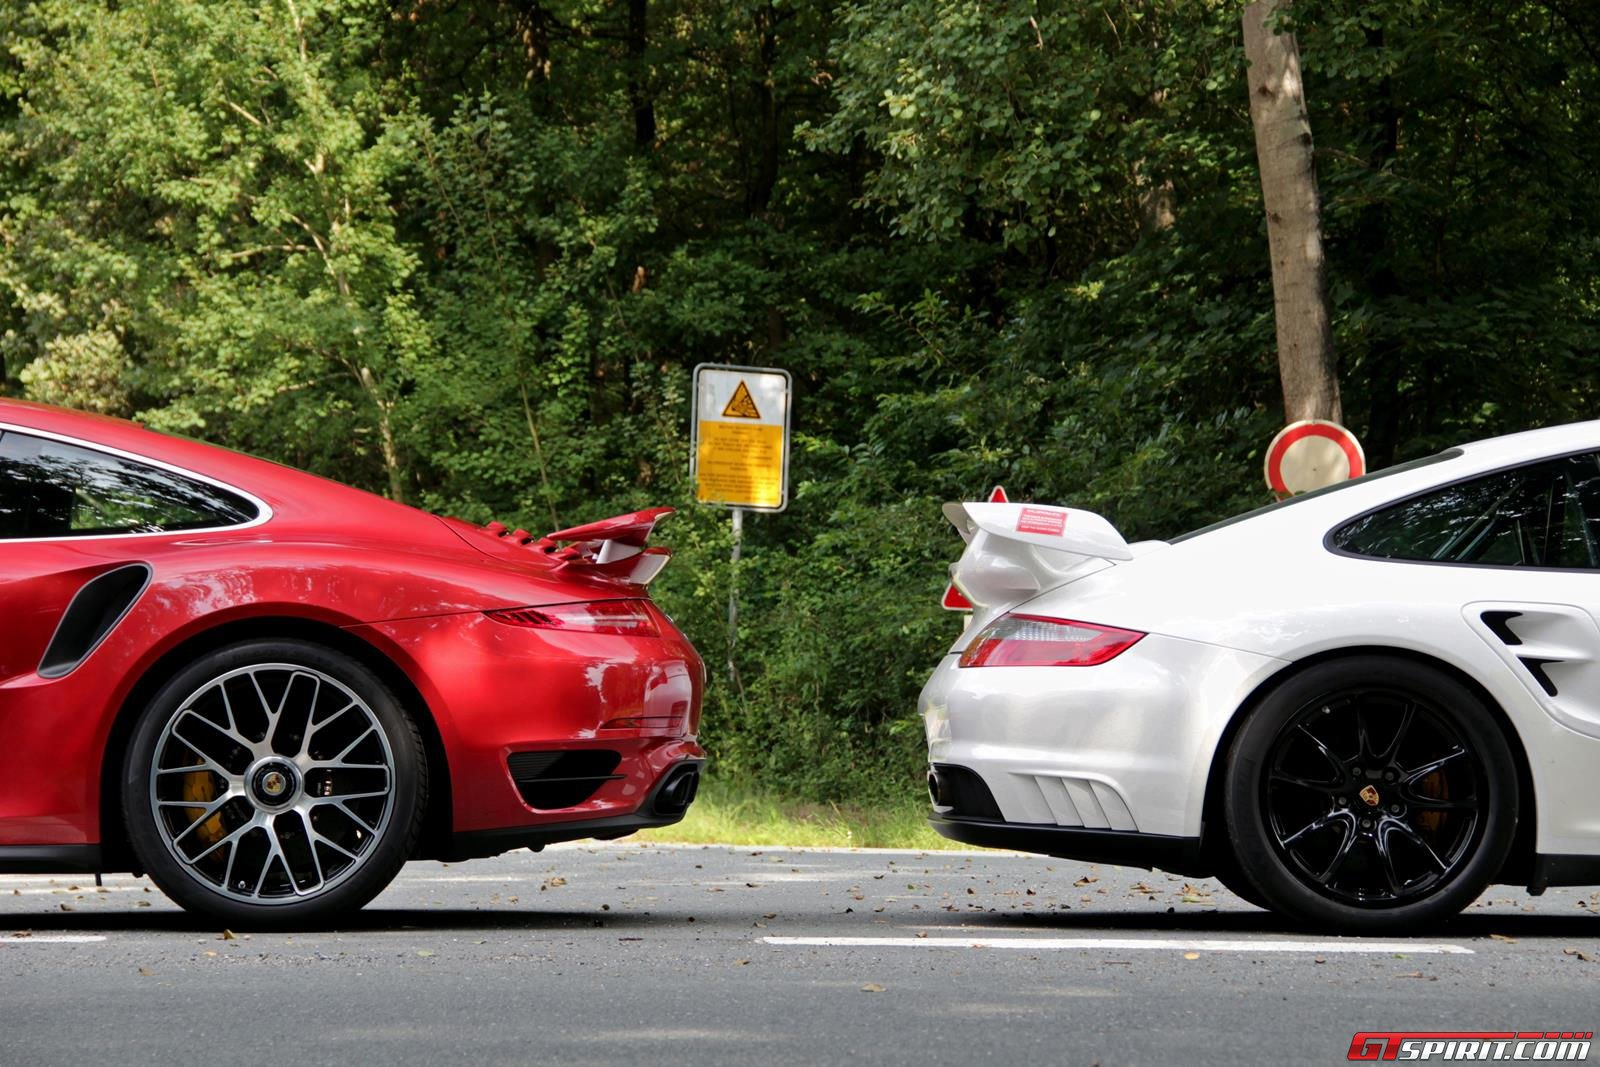 911 Turbo Pictures Amp Videos Gtspirit Publishes A 991